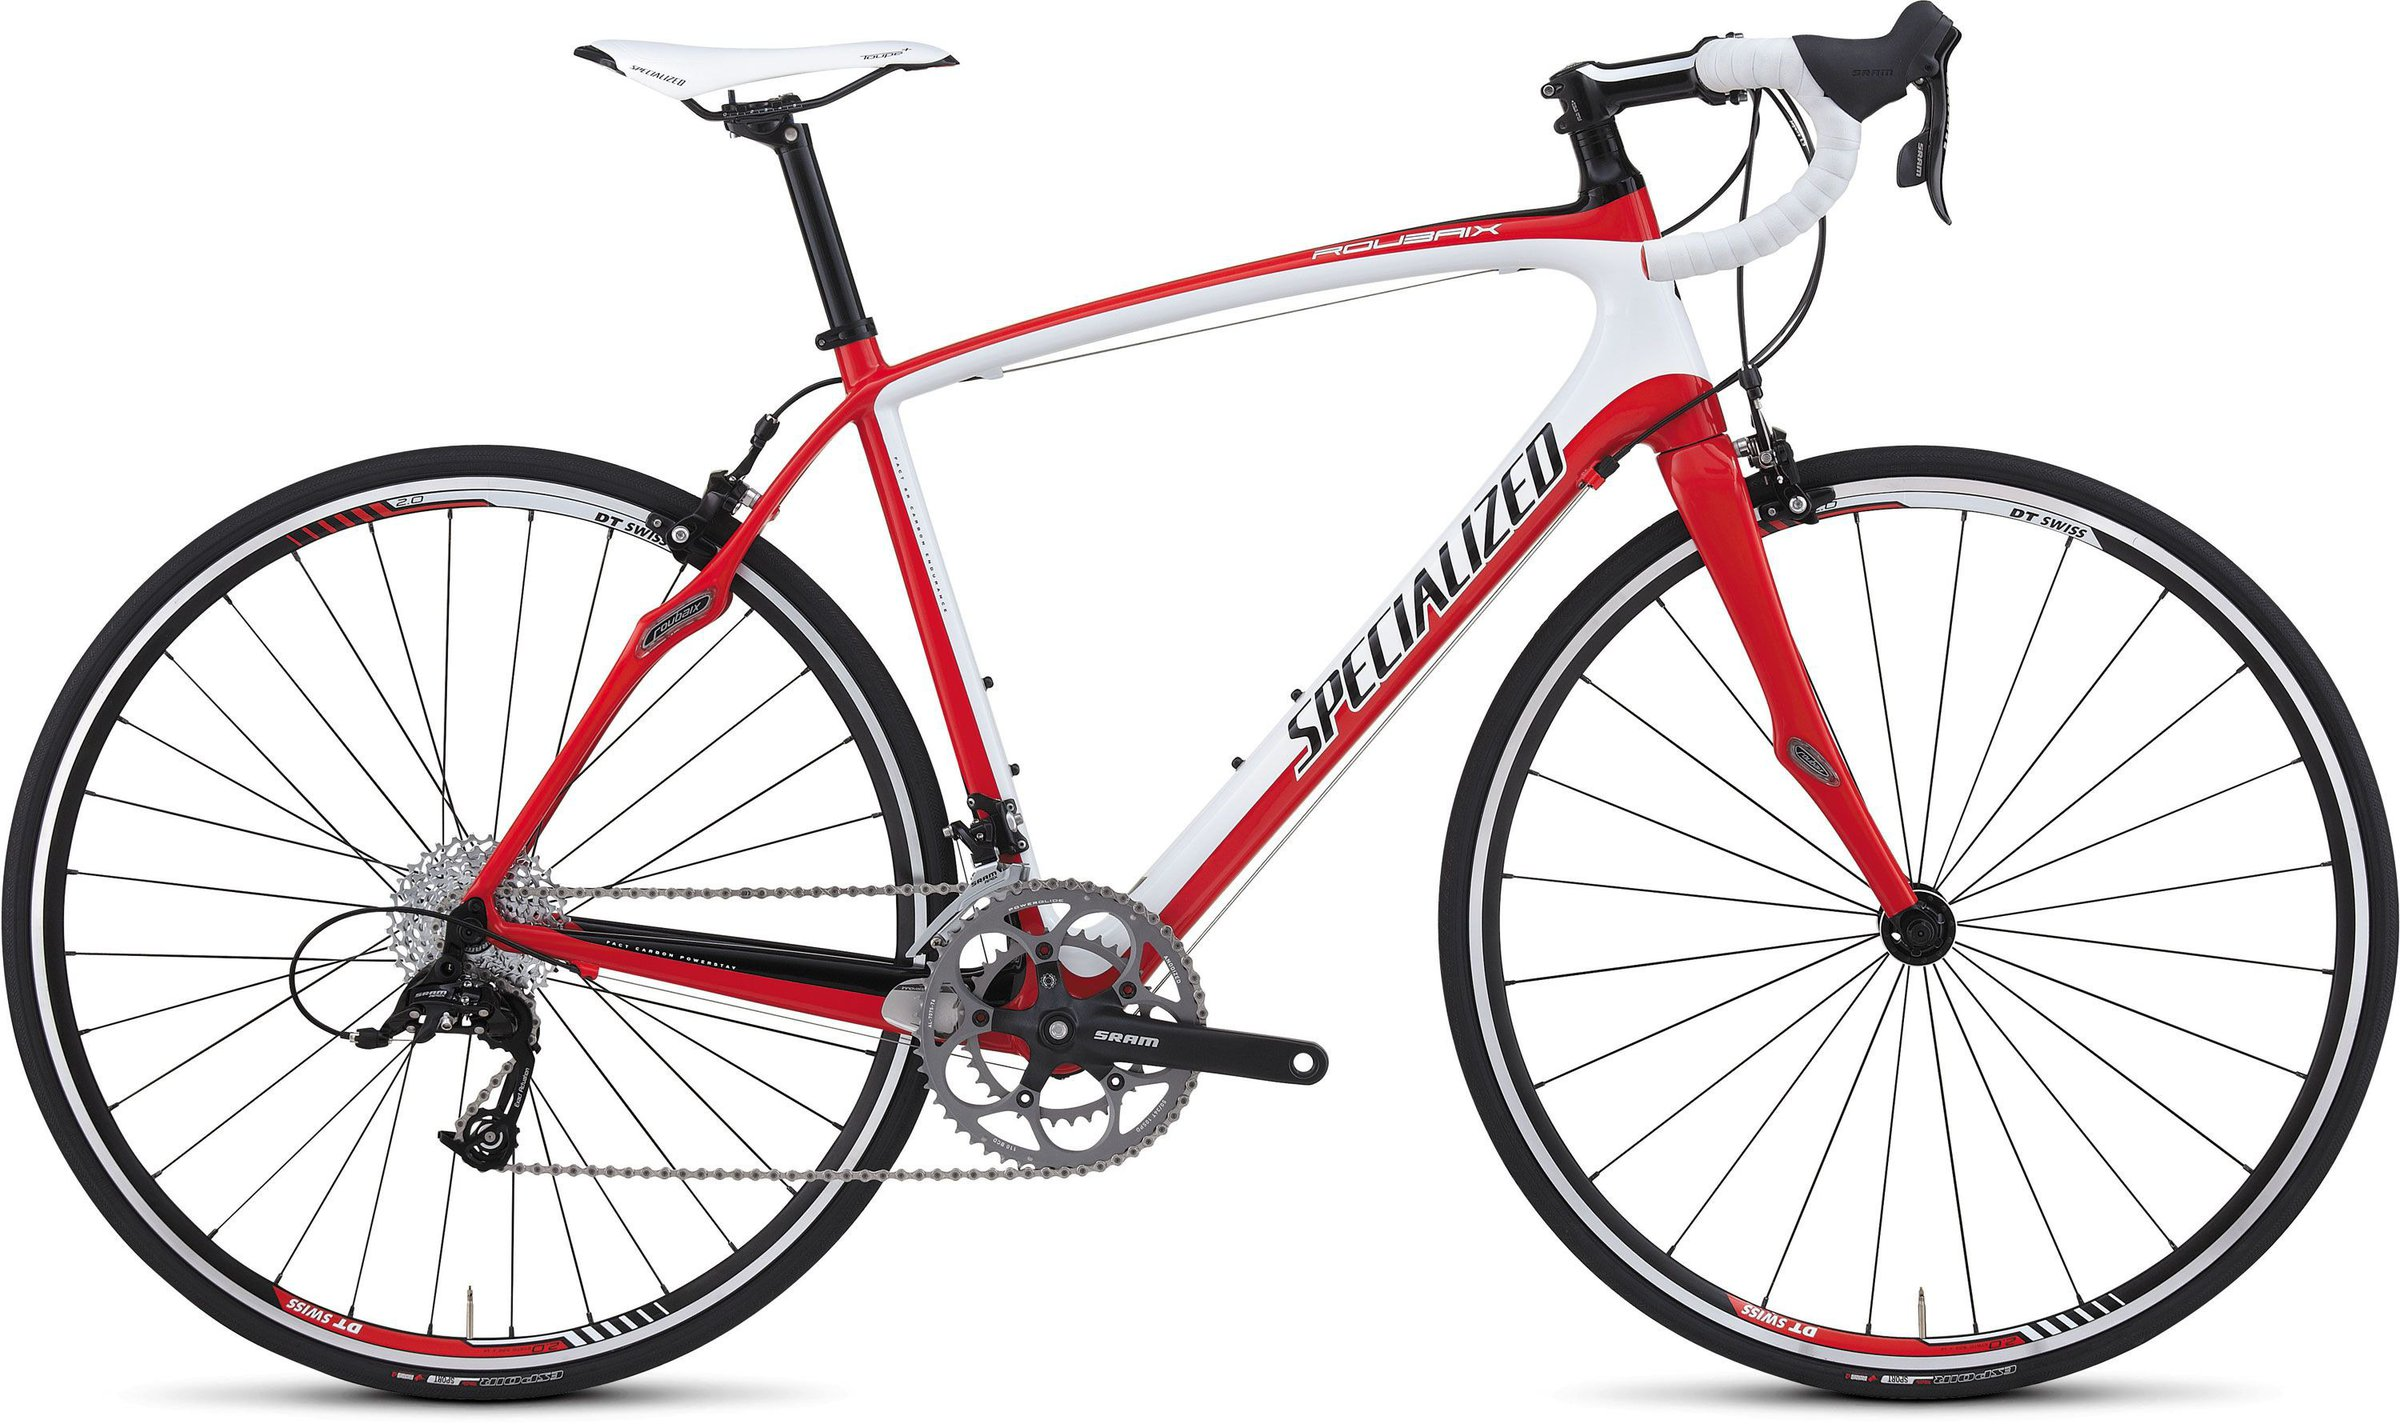 3ae8d8259fa Specialized Roubaix Apex Compact - Friendly knowledgeable full ...